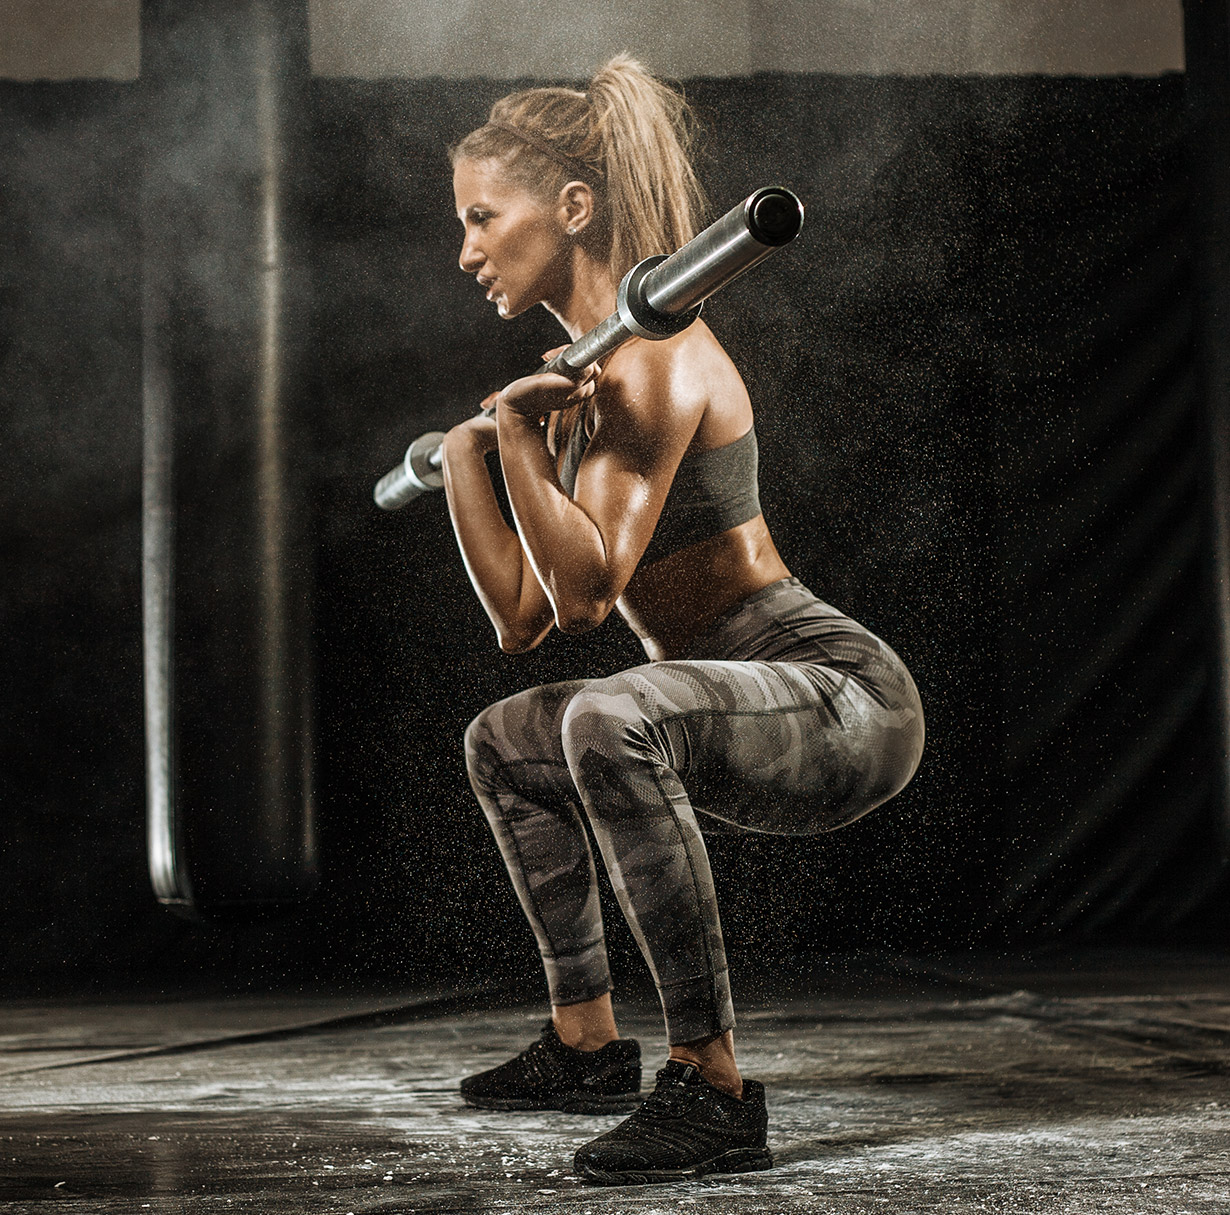 Scaled weights and training programs